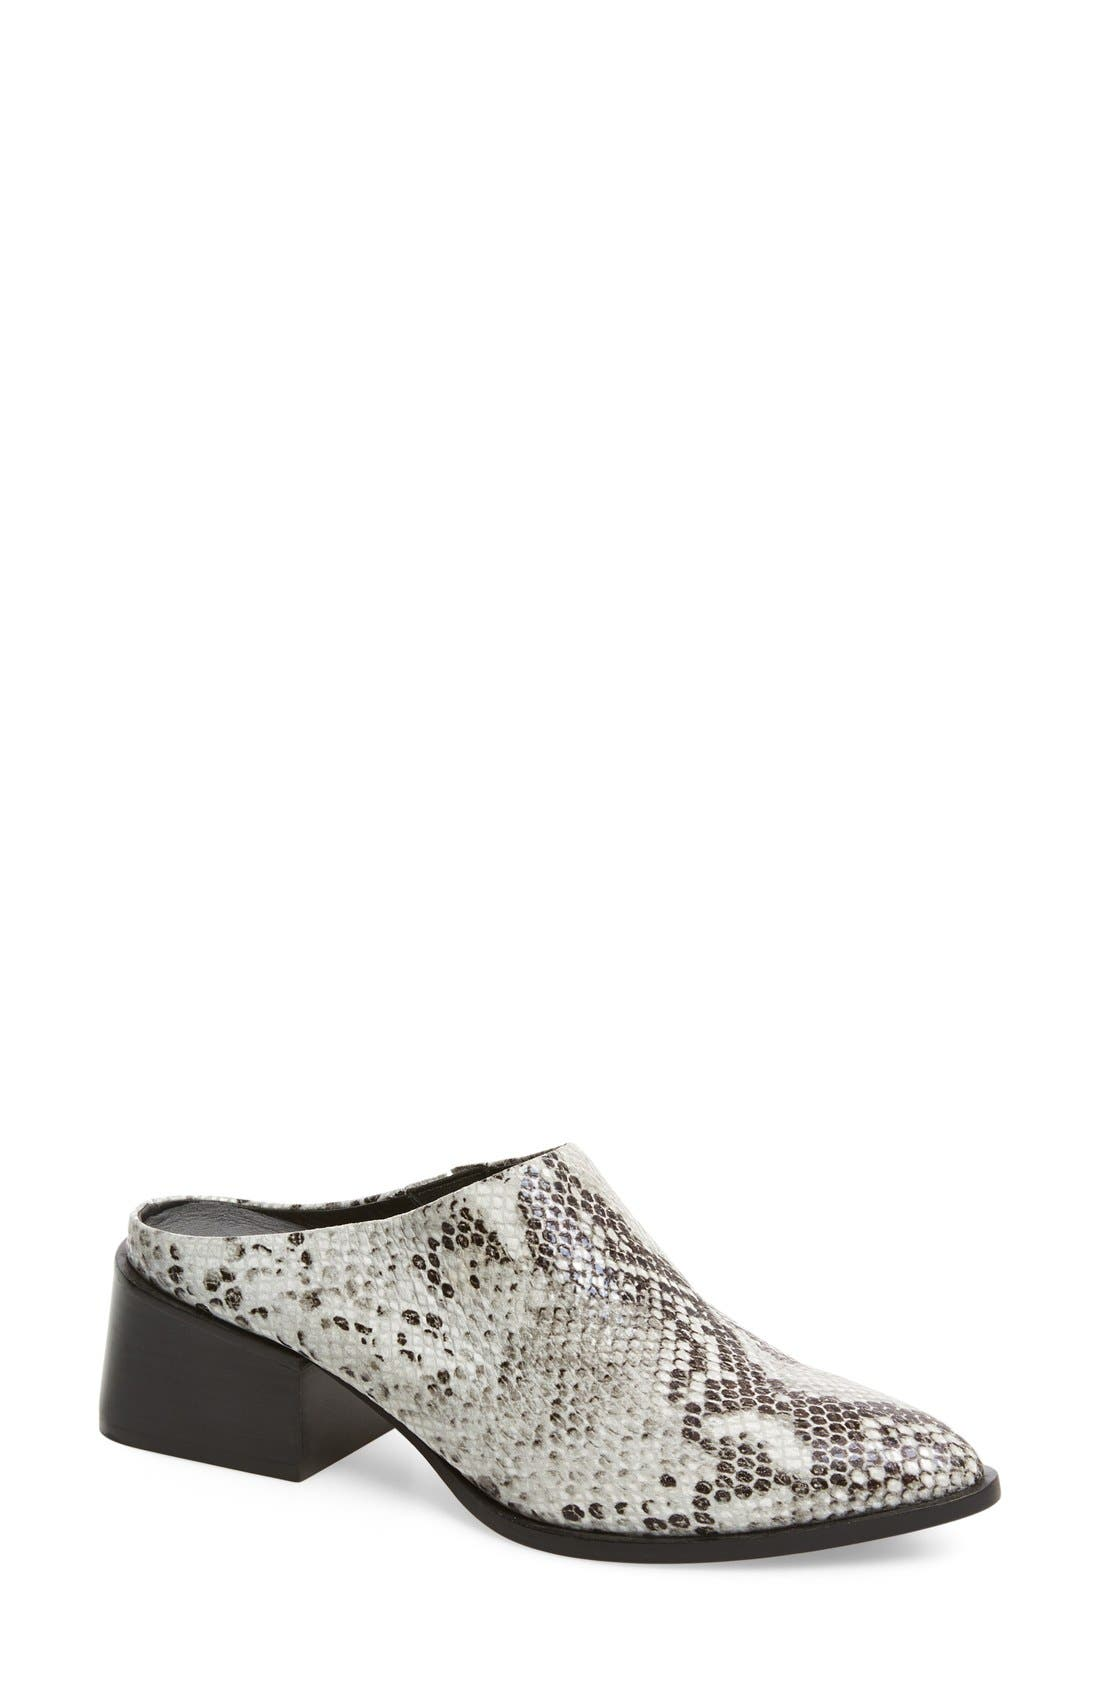 SOL SANA Camille Pointy Toe Mule